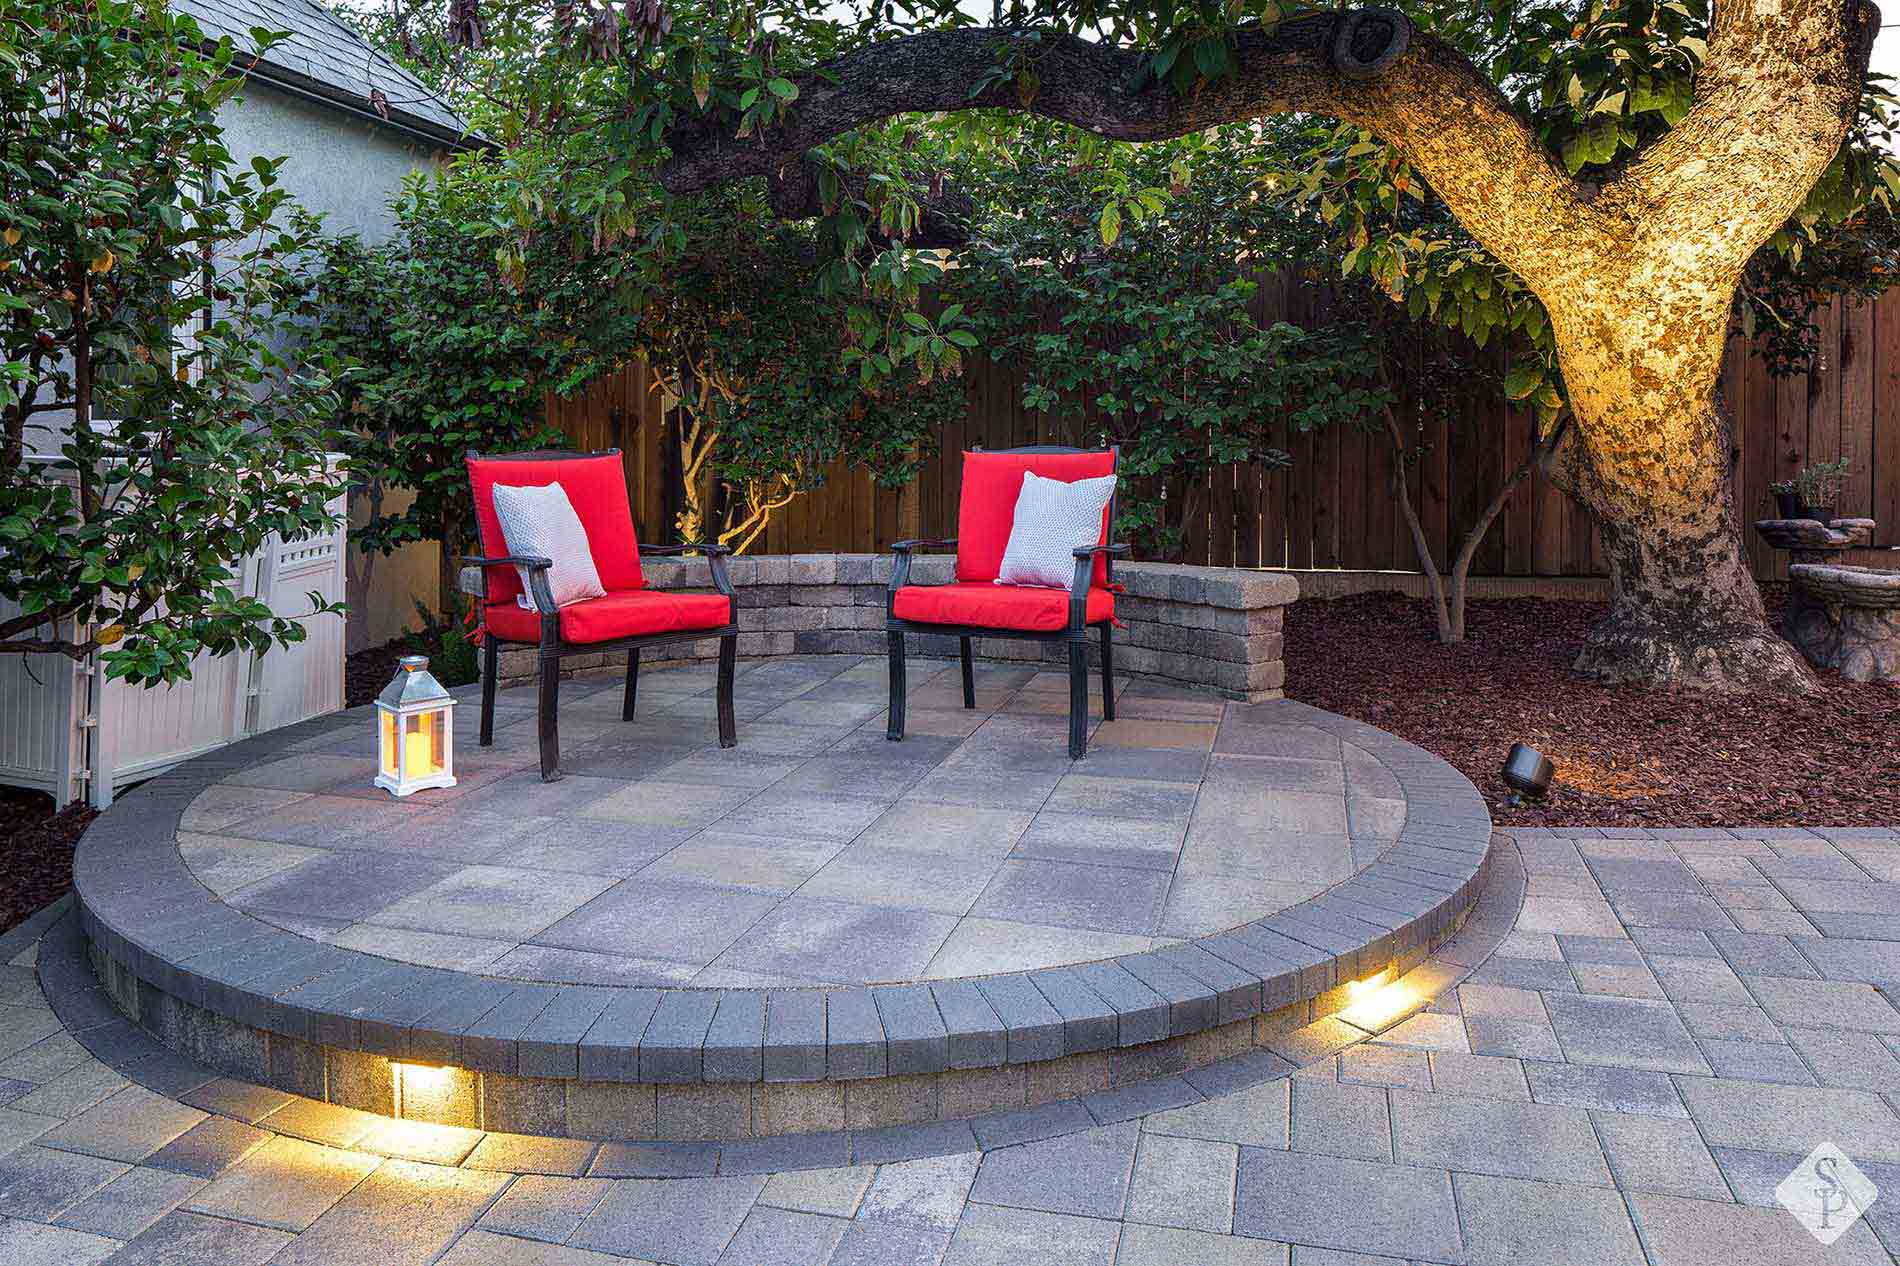 The difference between stone pavers and other surfaces